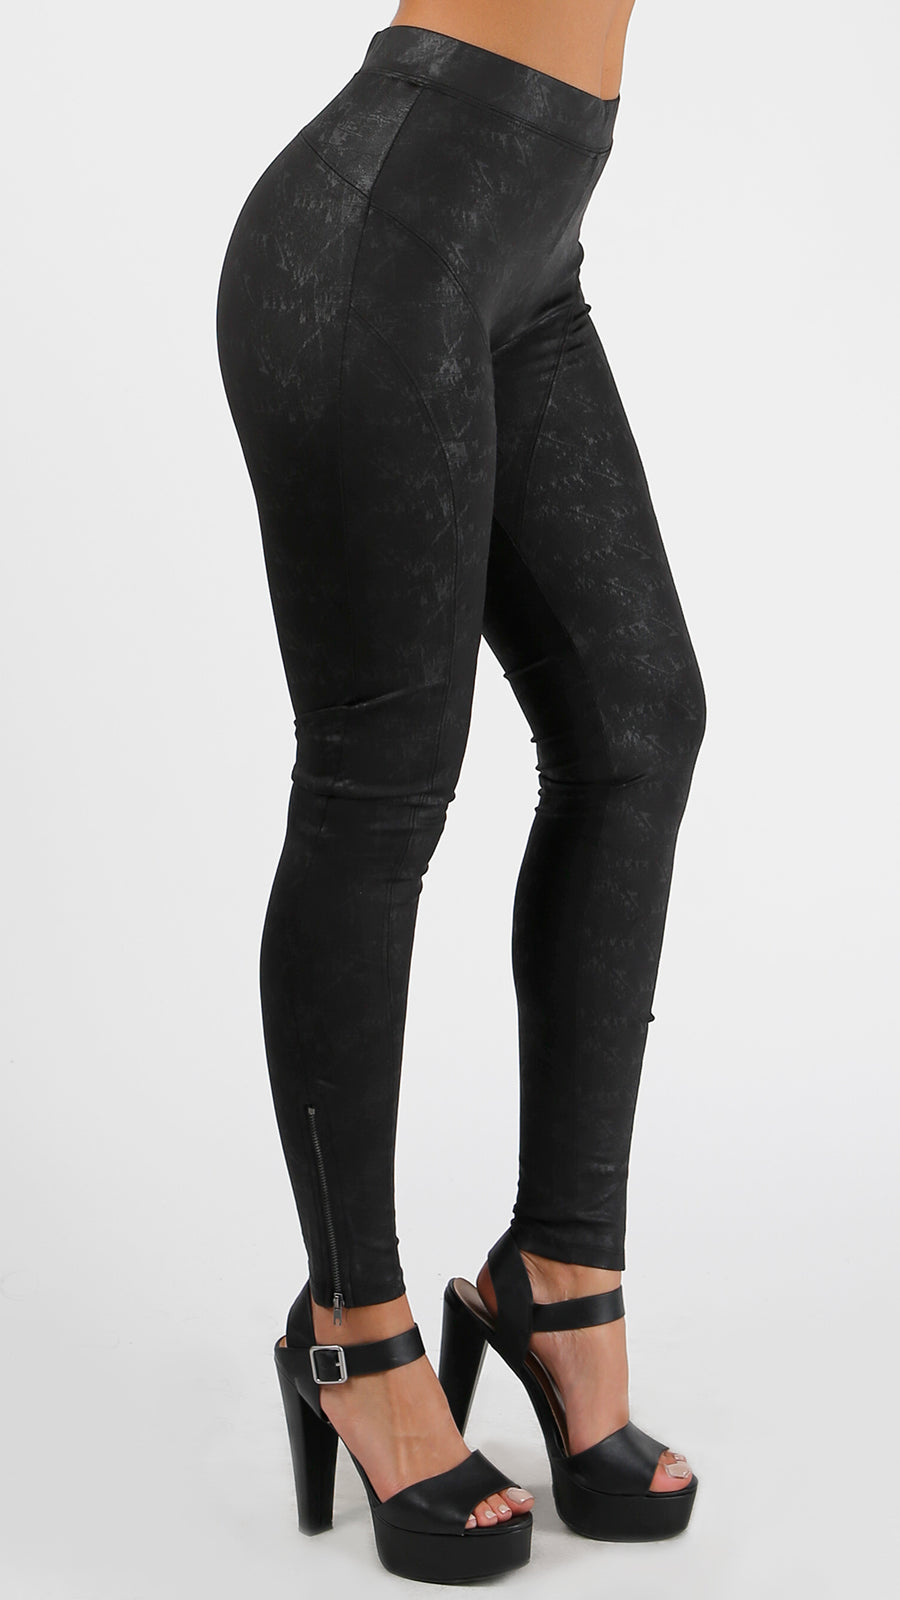 Knit Mesh Panel Leggings